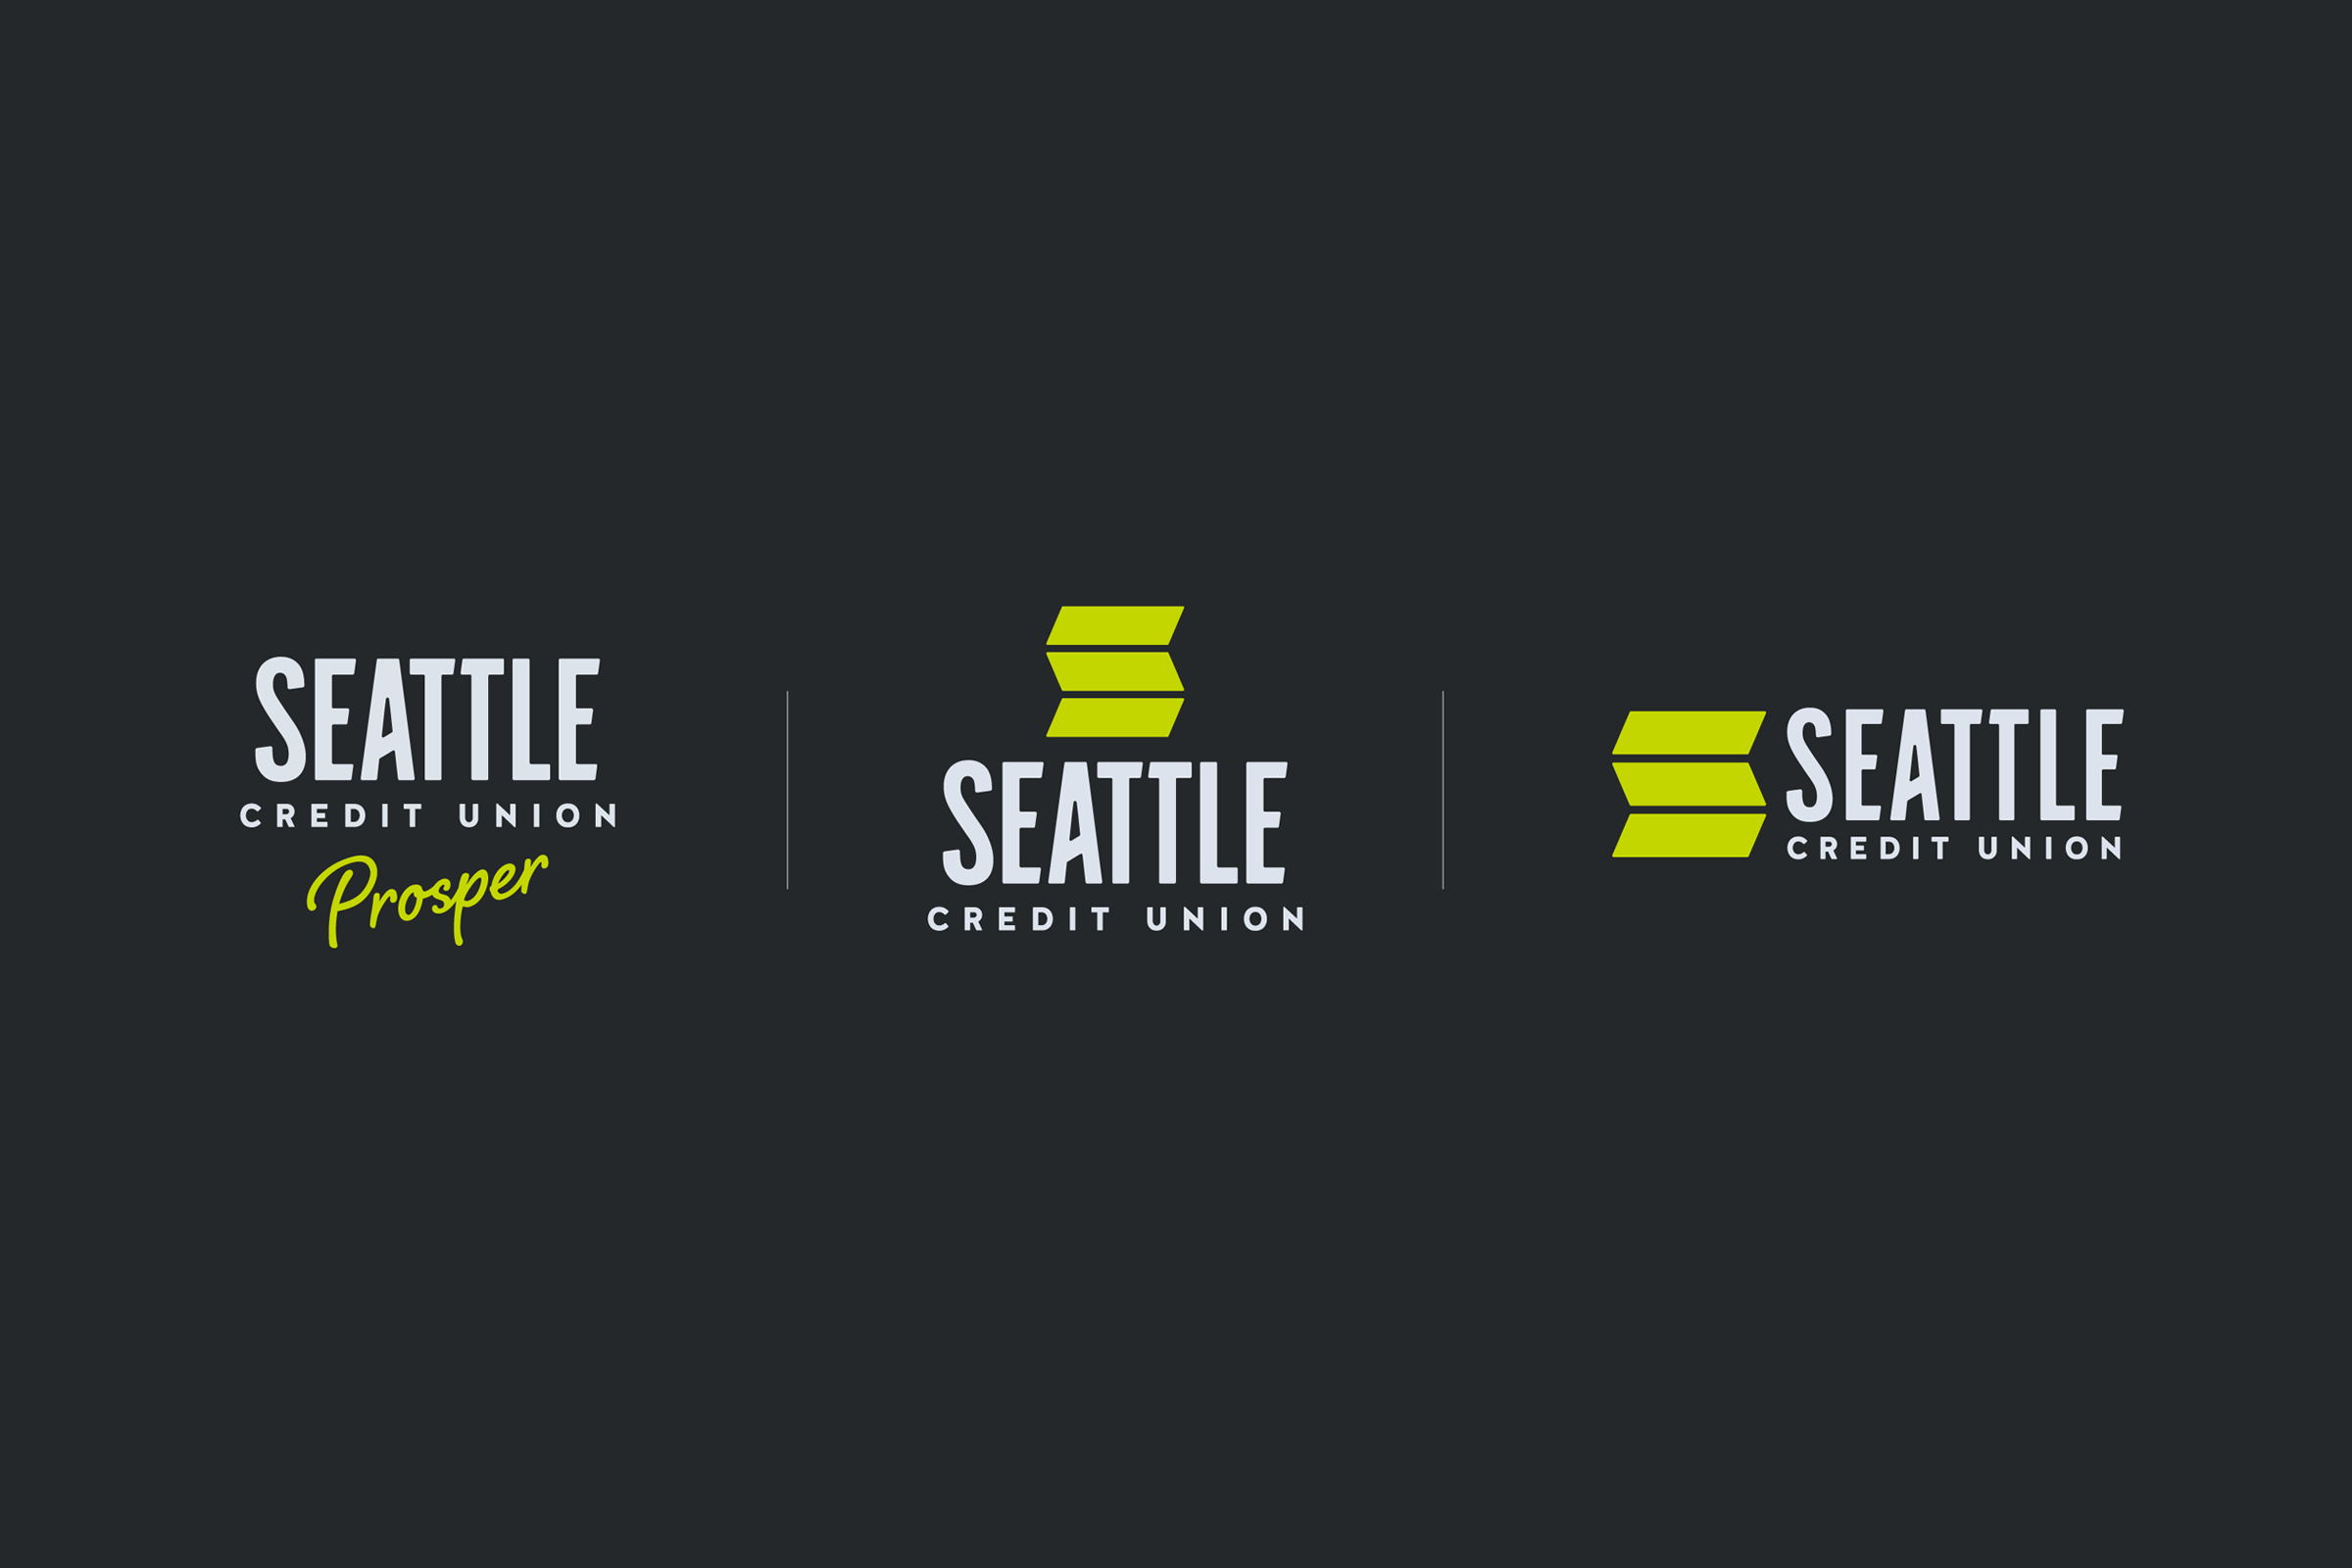 Seattle Credit Union logo alts